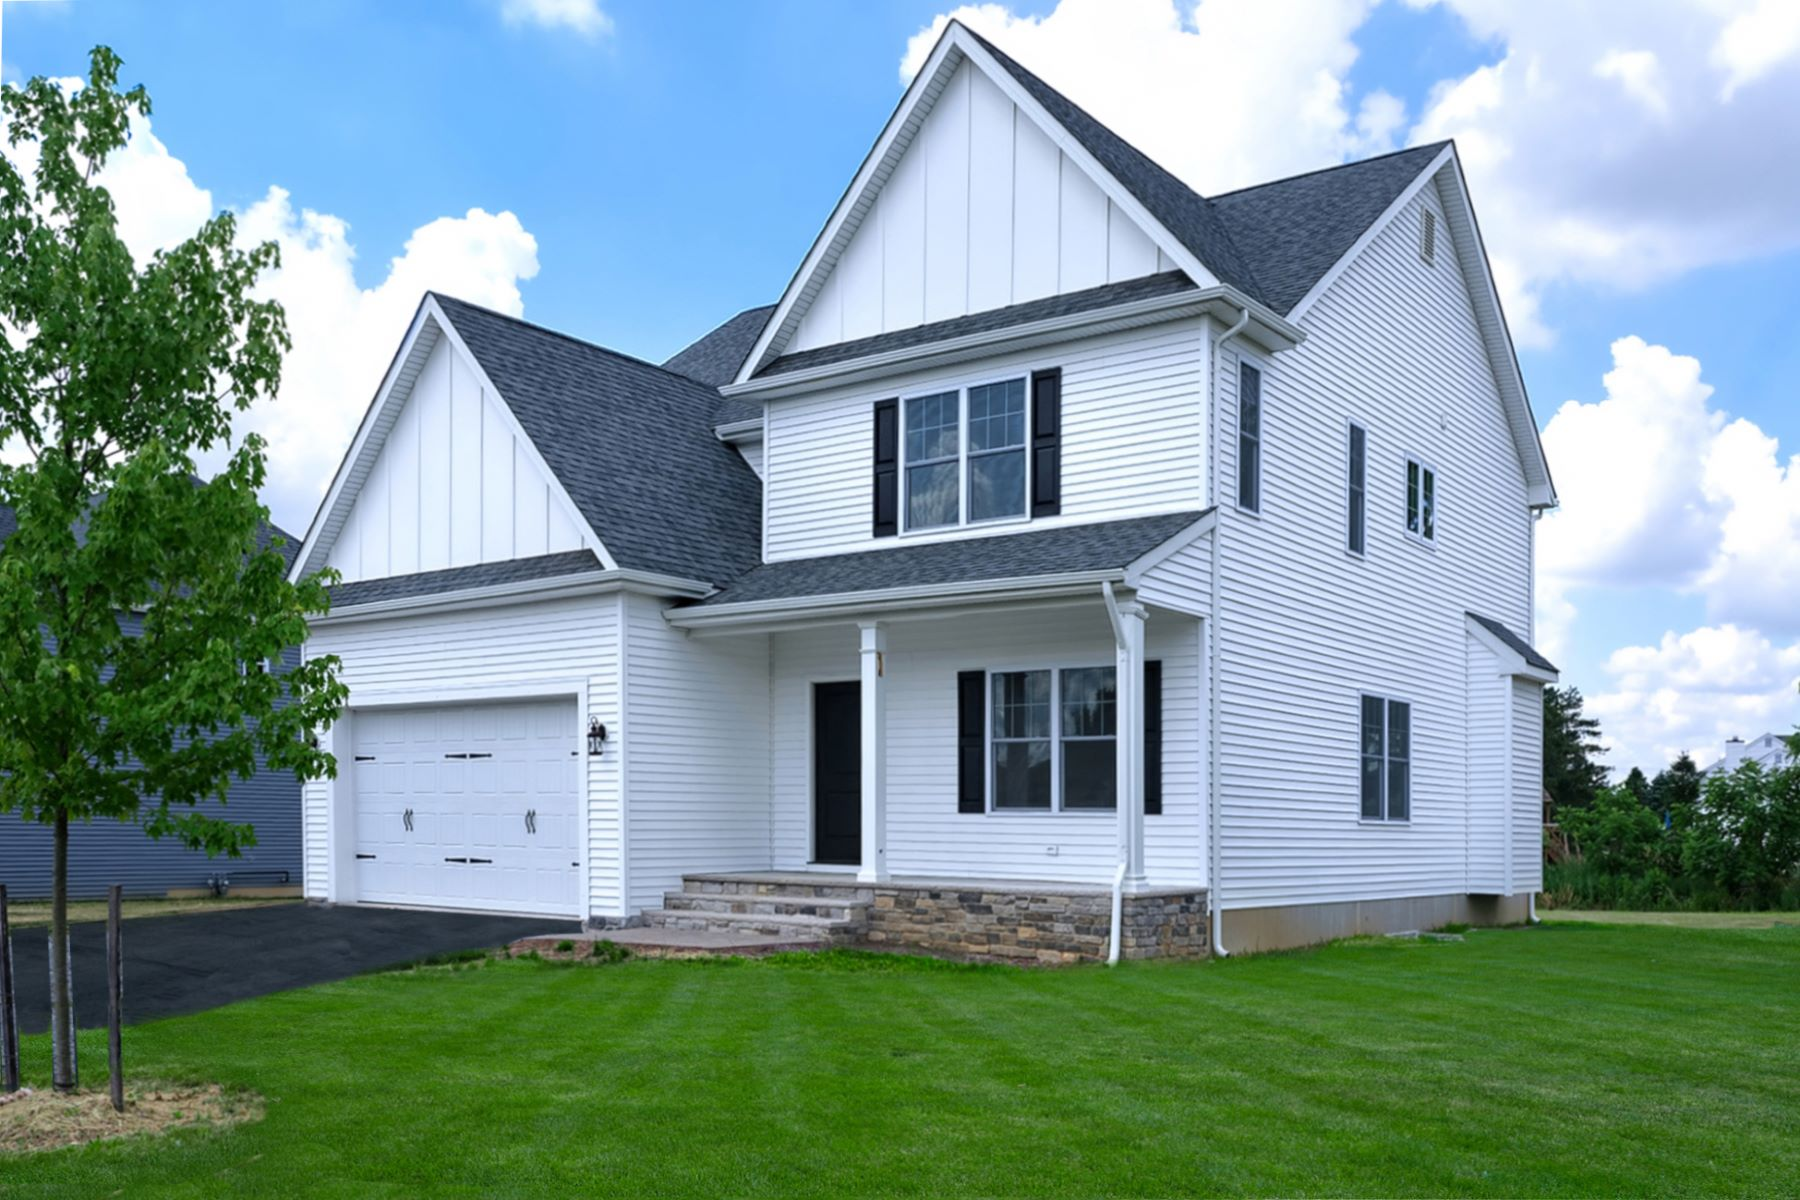 Single Family Homes のために 売買 アット Expect Nothing but the Best 2440 Liberty Terrace, Easton, ペンシルベニア 18040 アメリカ